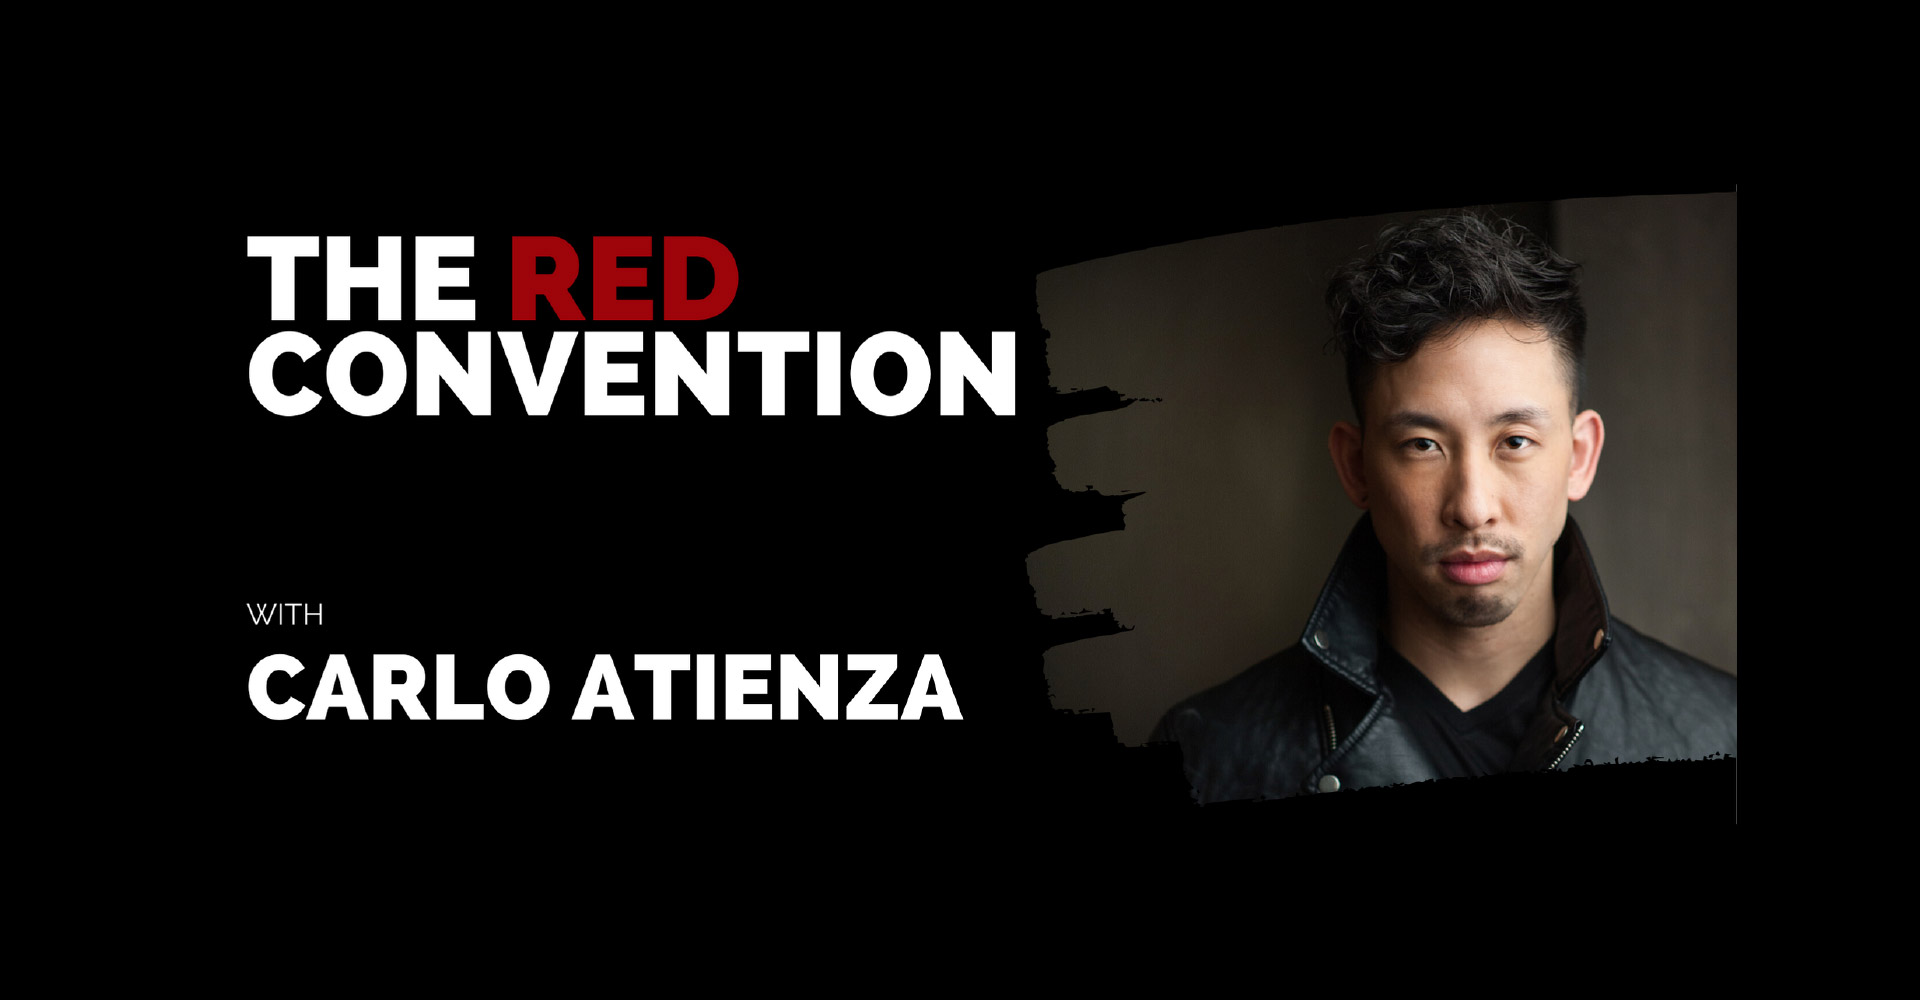 The Red Convention Carlo Atienza